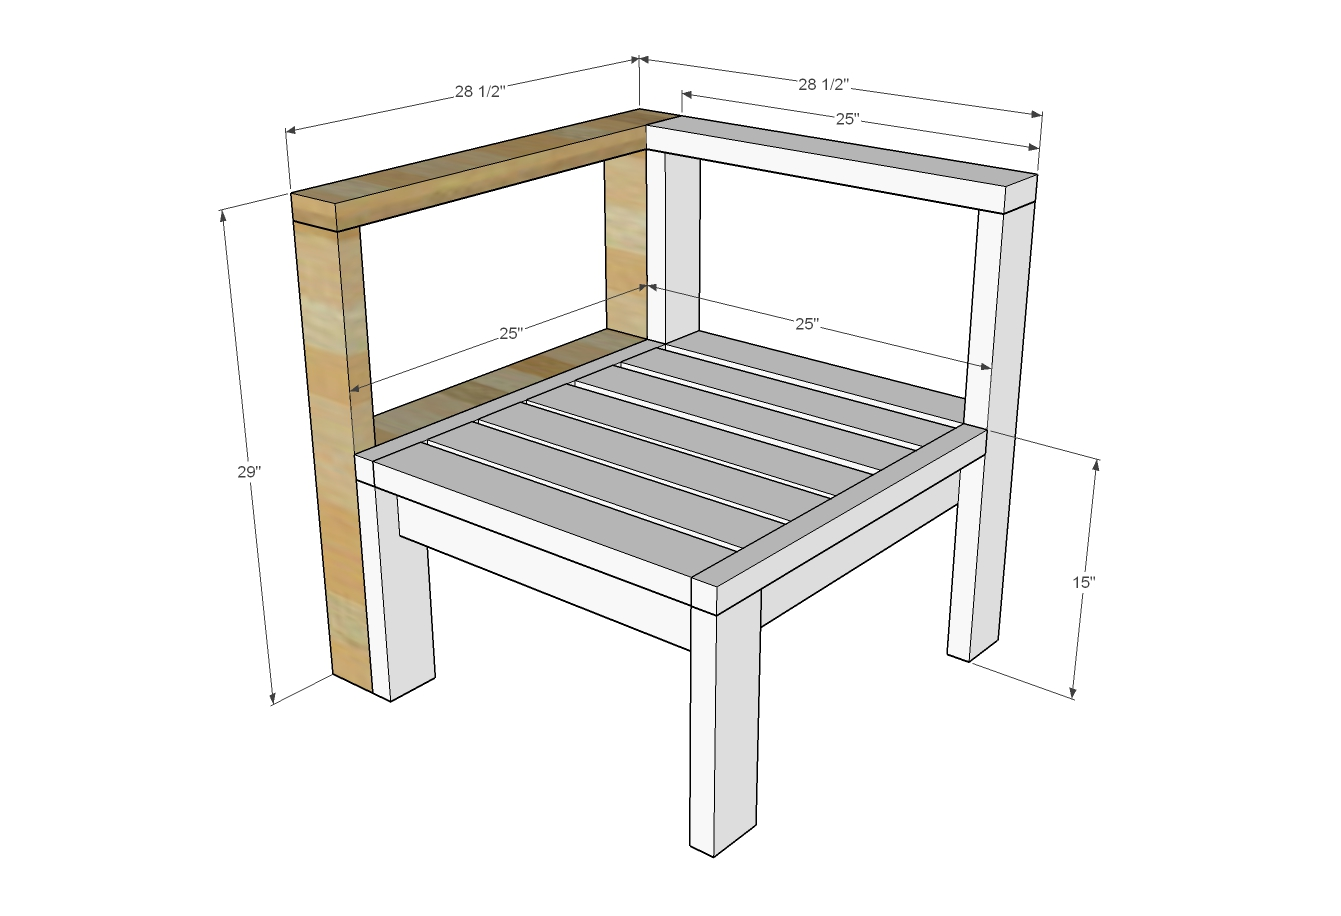 dimensions diagram for outdoor sectional piece with corner